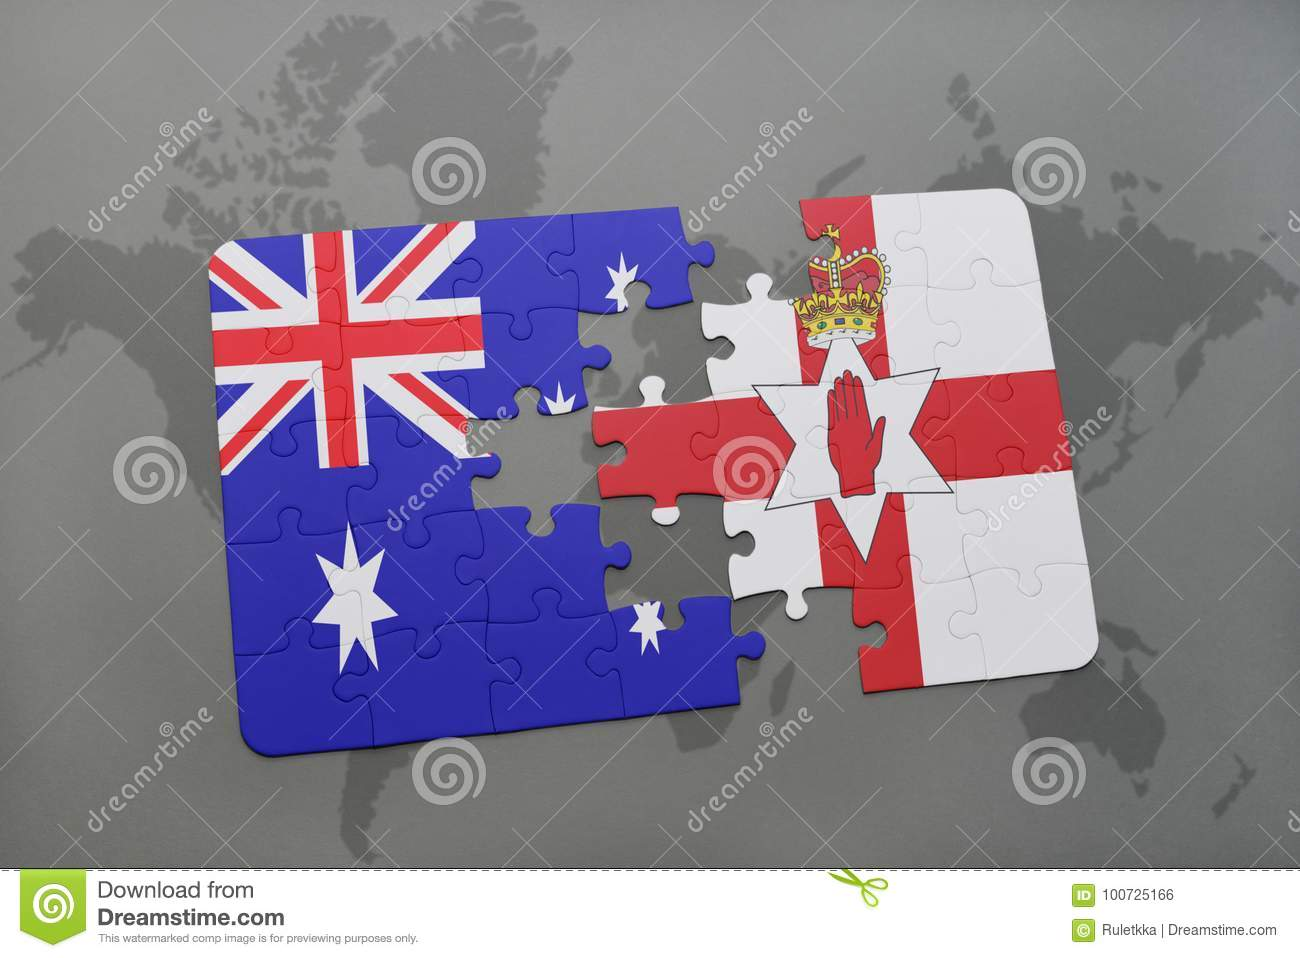 Australia Map Jigsaw.Puzzle With The National Flag Of Australia And Northern Ireland On A